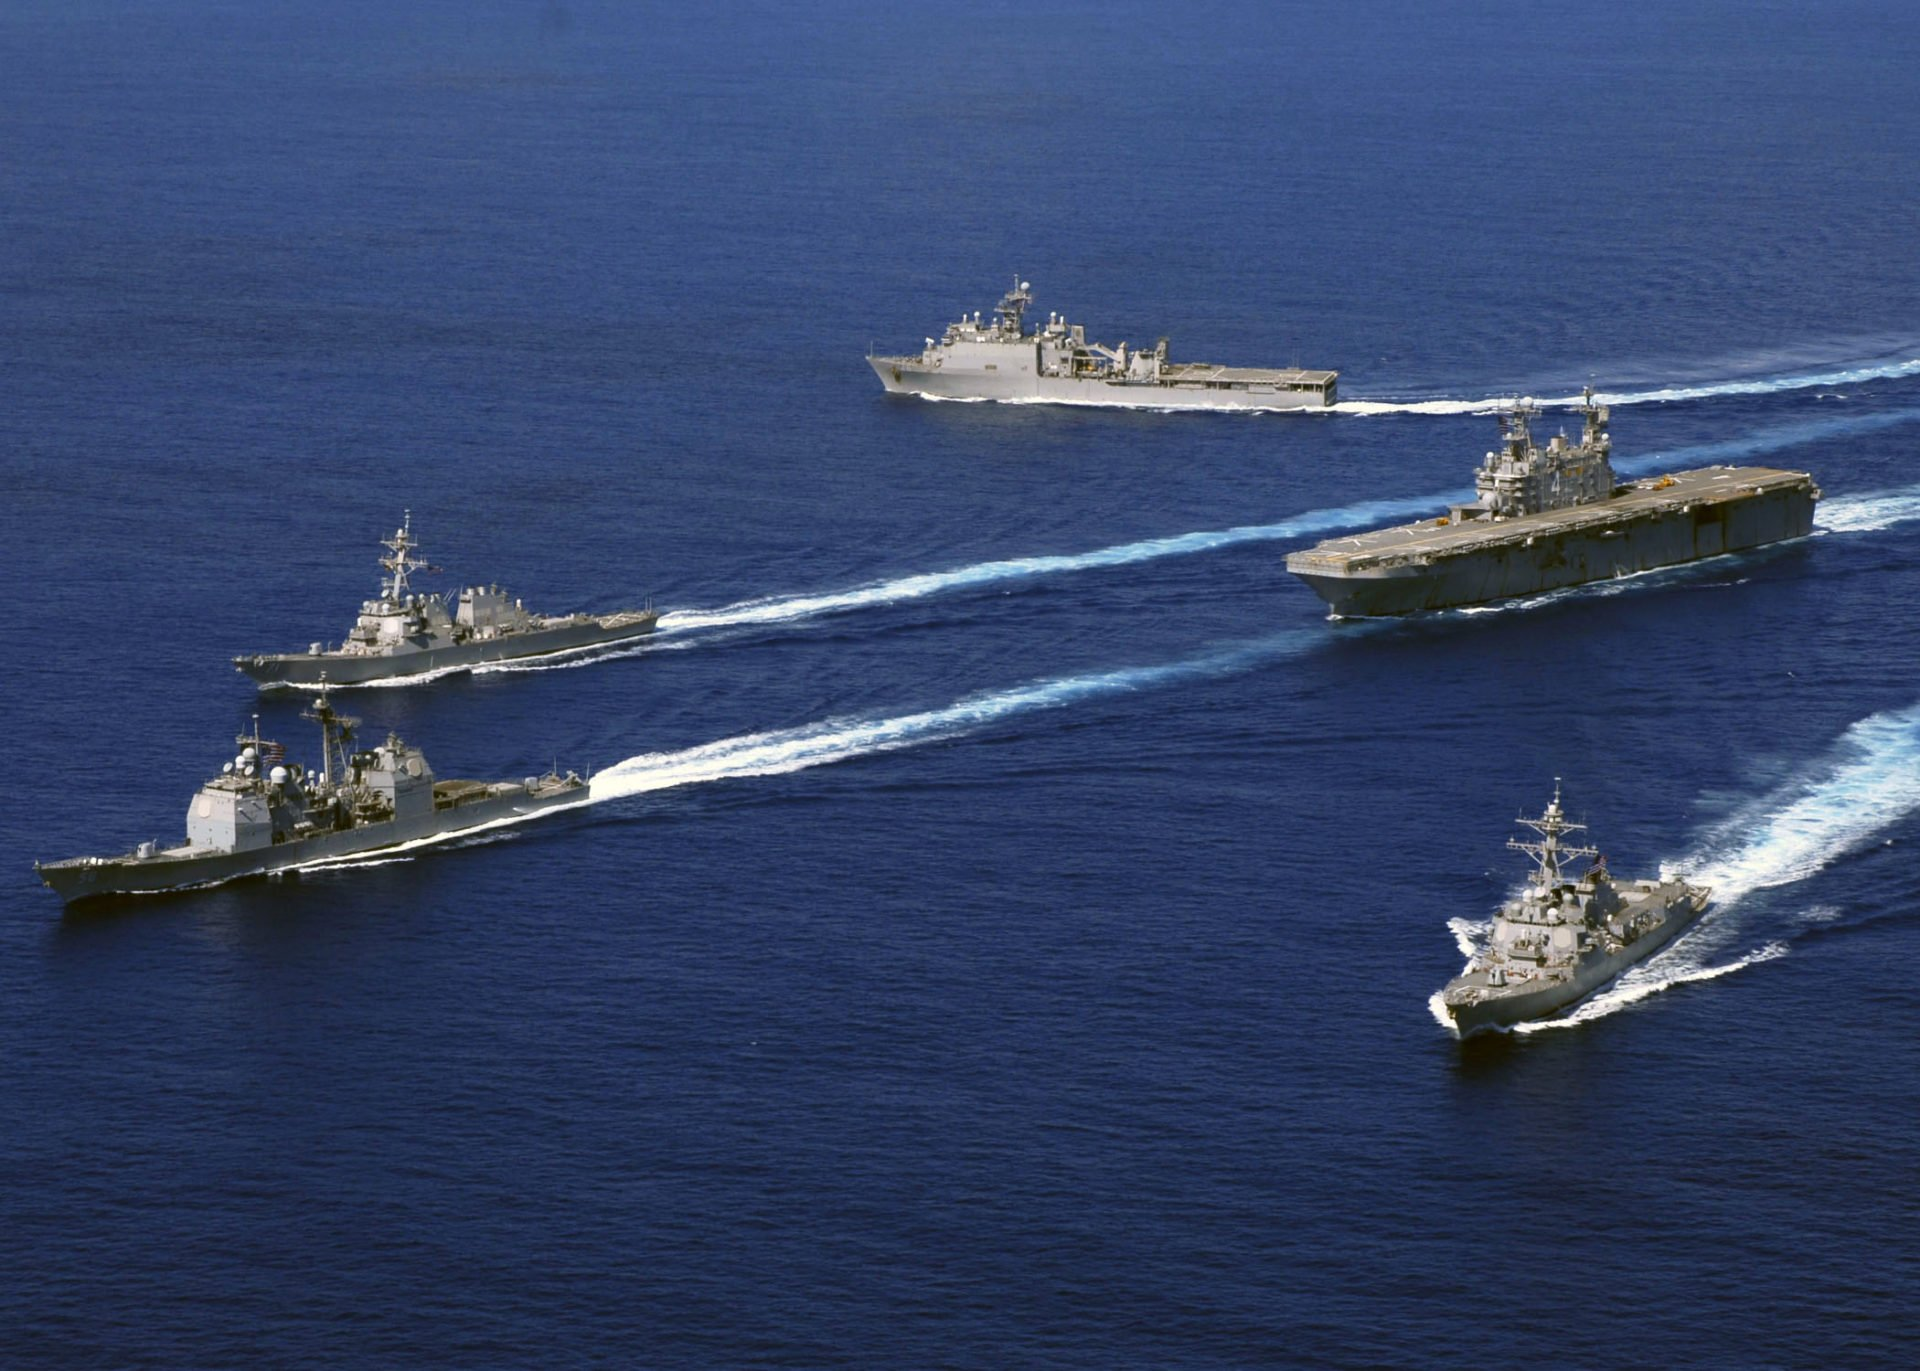 The U.S. Navy is standing its ground and said it will not leave the South China Sea despite new Chinese military facilities on artificial islands in the region.  Lt. Cmdr. Hawkins, on board the nuclear-powered USS Carl Vinson, said the Navy has carried out routine patrols in the South China Sea for 70 years, …